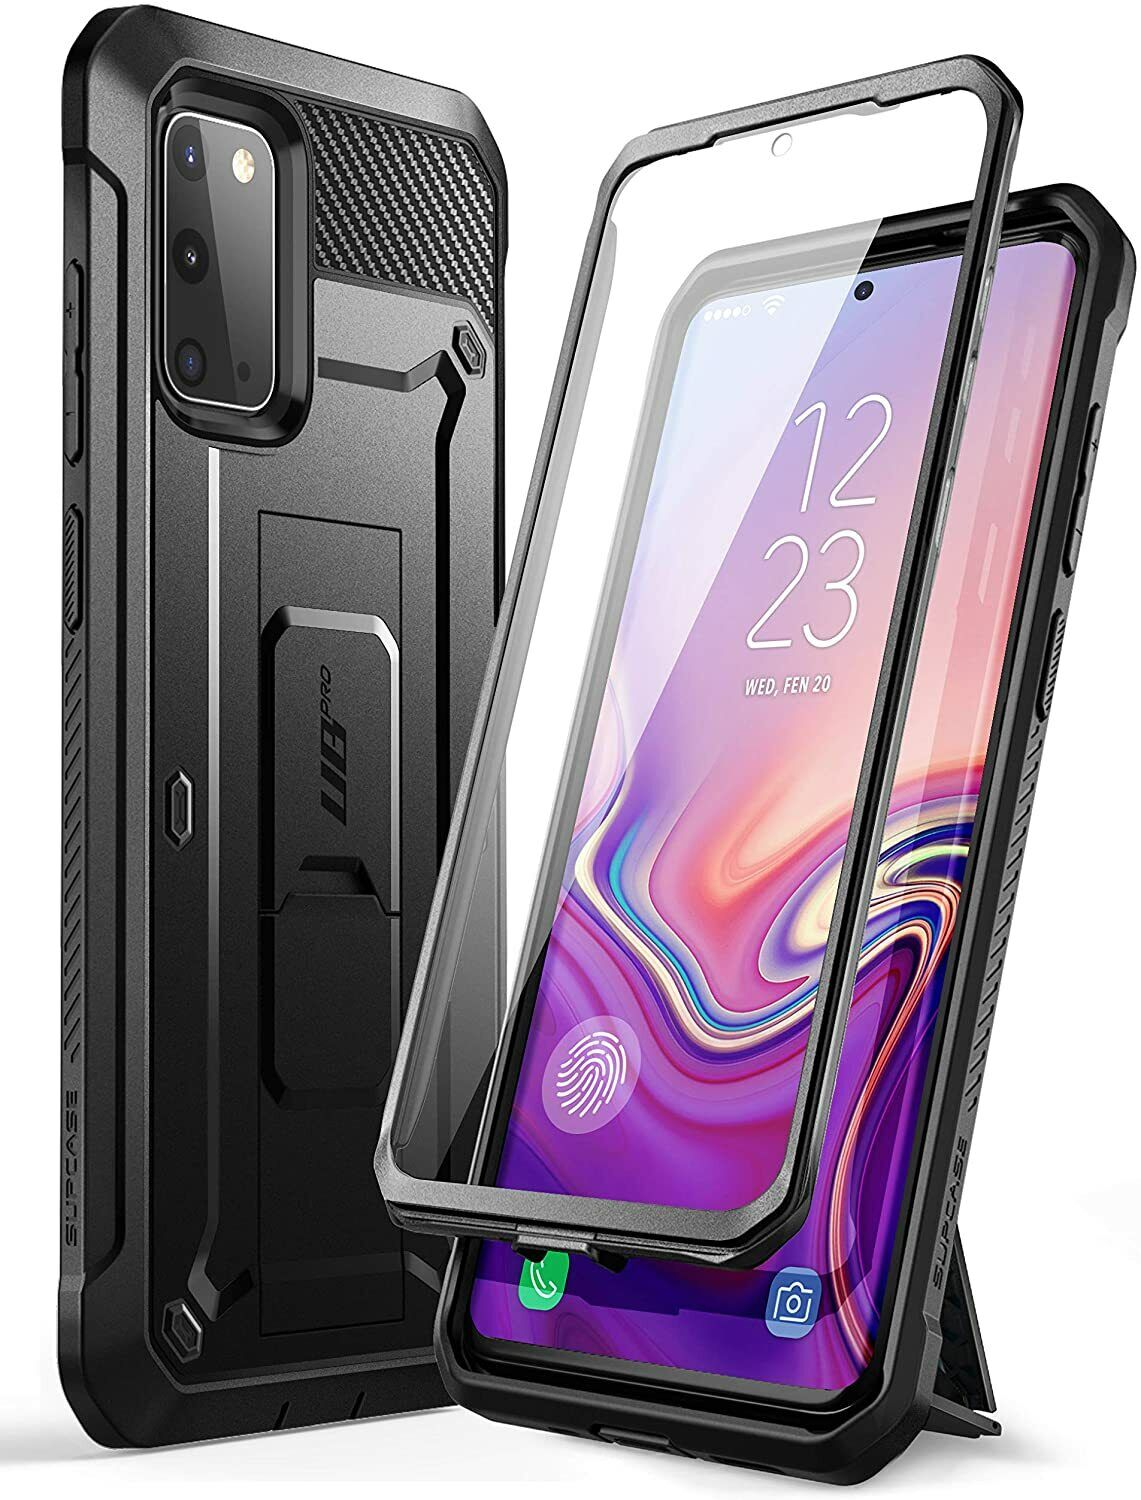 SUPCASE UBPro Screen Protector Case Rugged Stand Cover for S